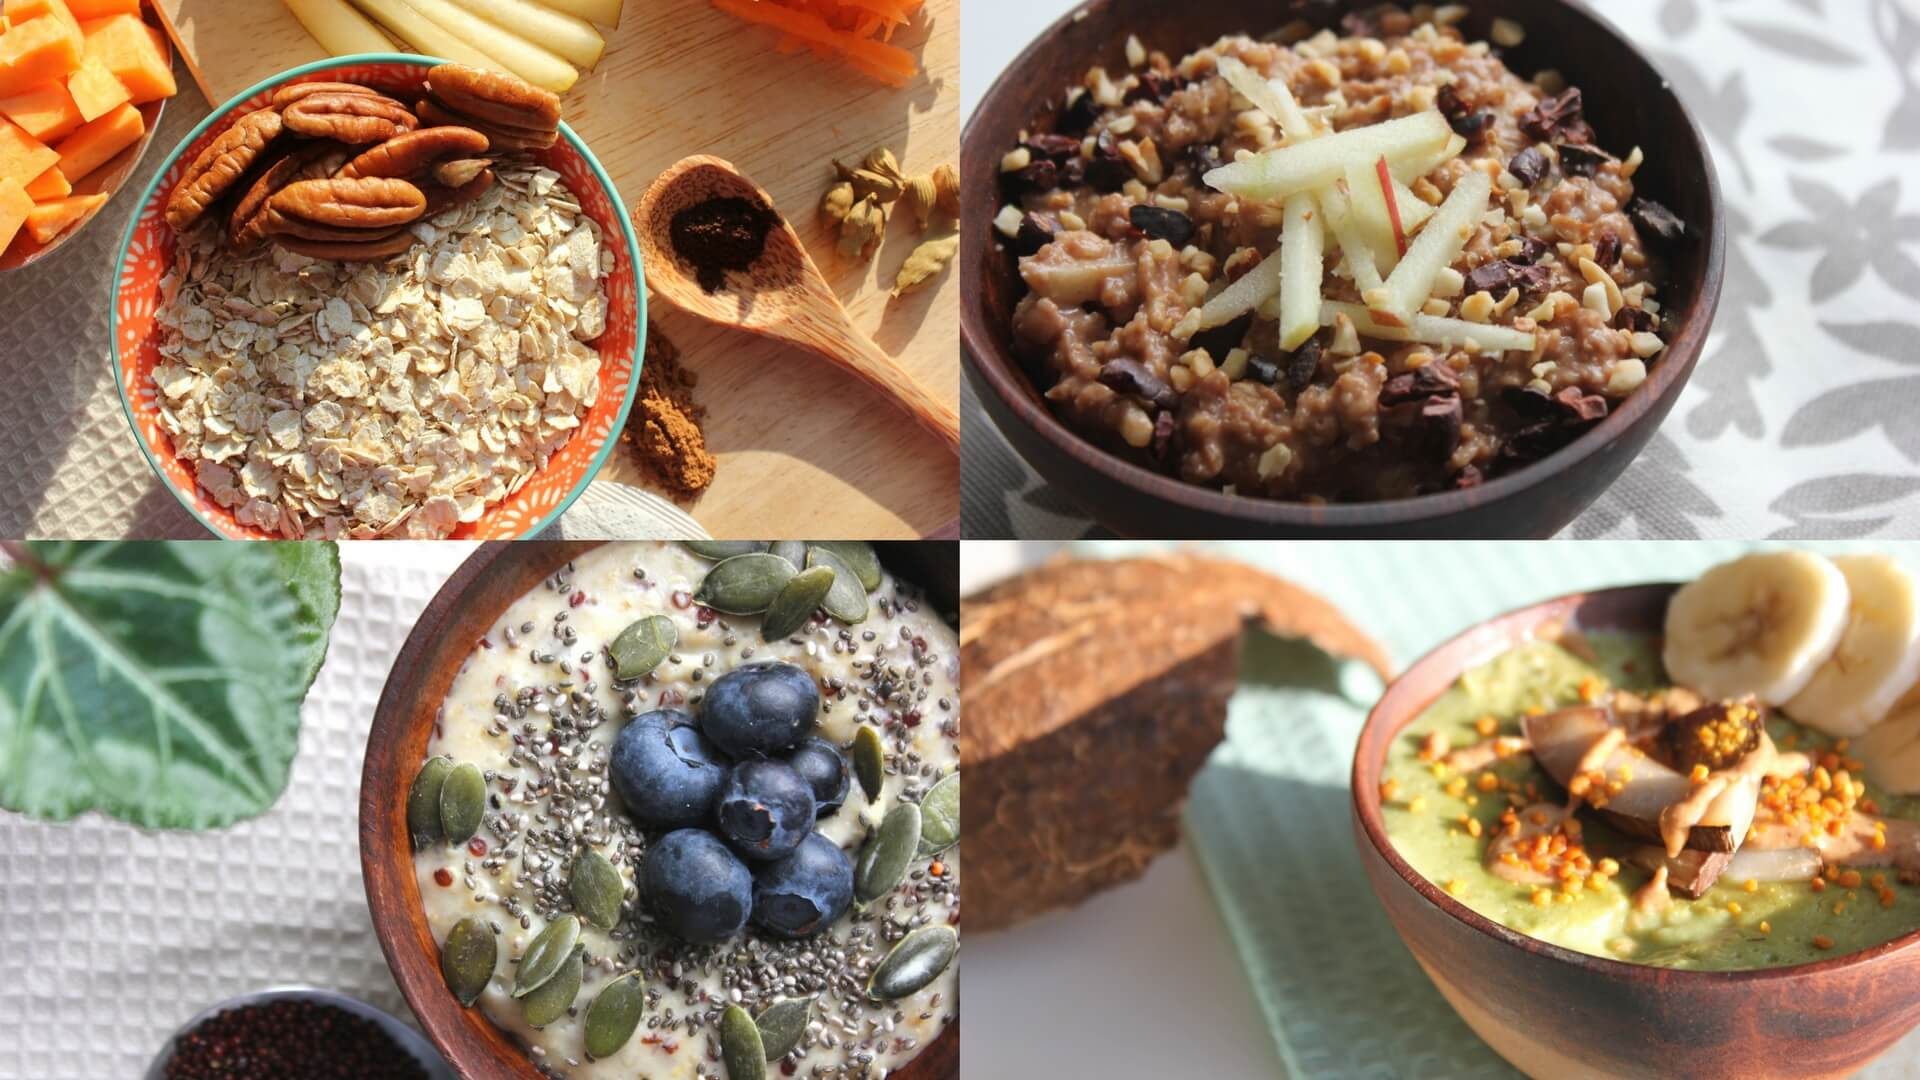 Wholegrain and Cereals Prevent From Various Diseases